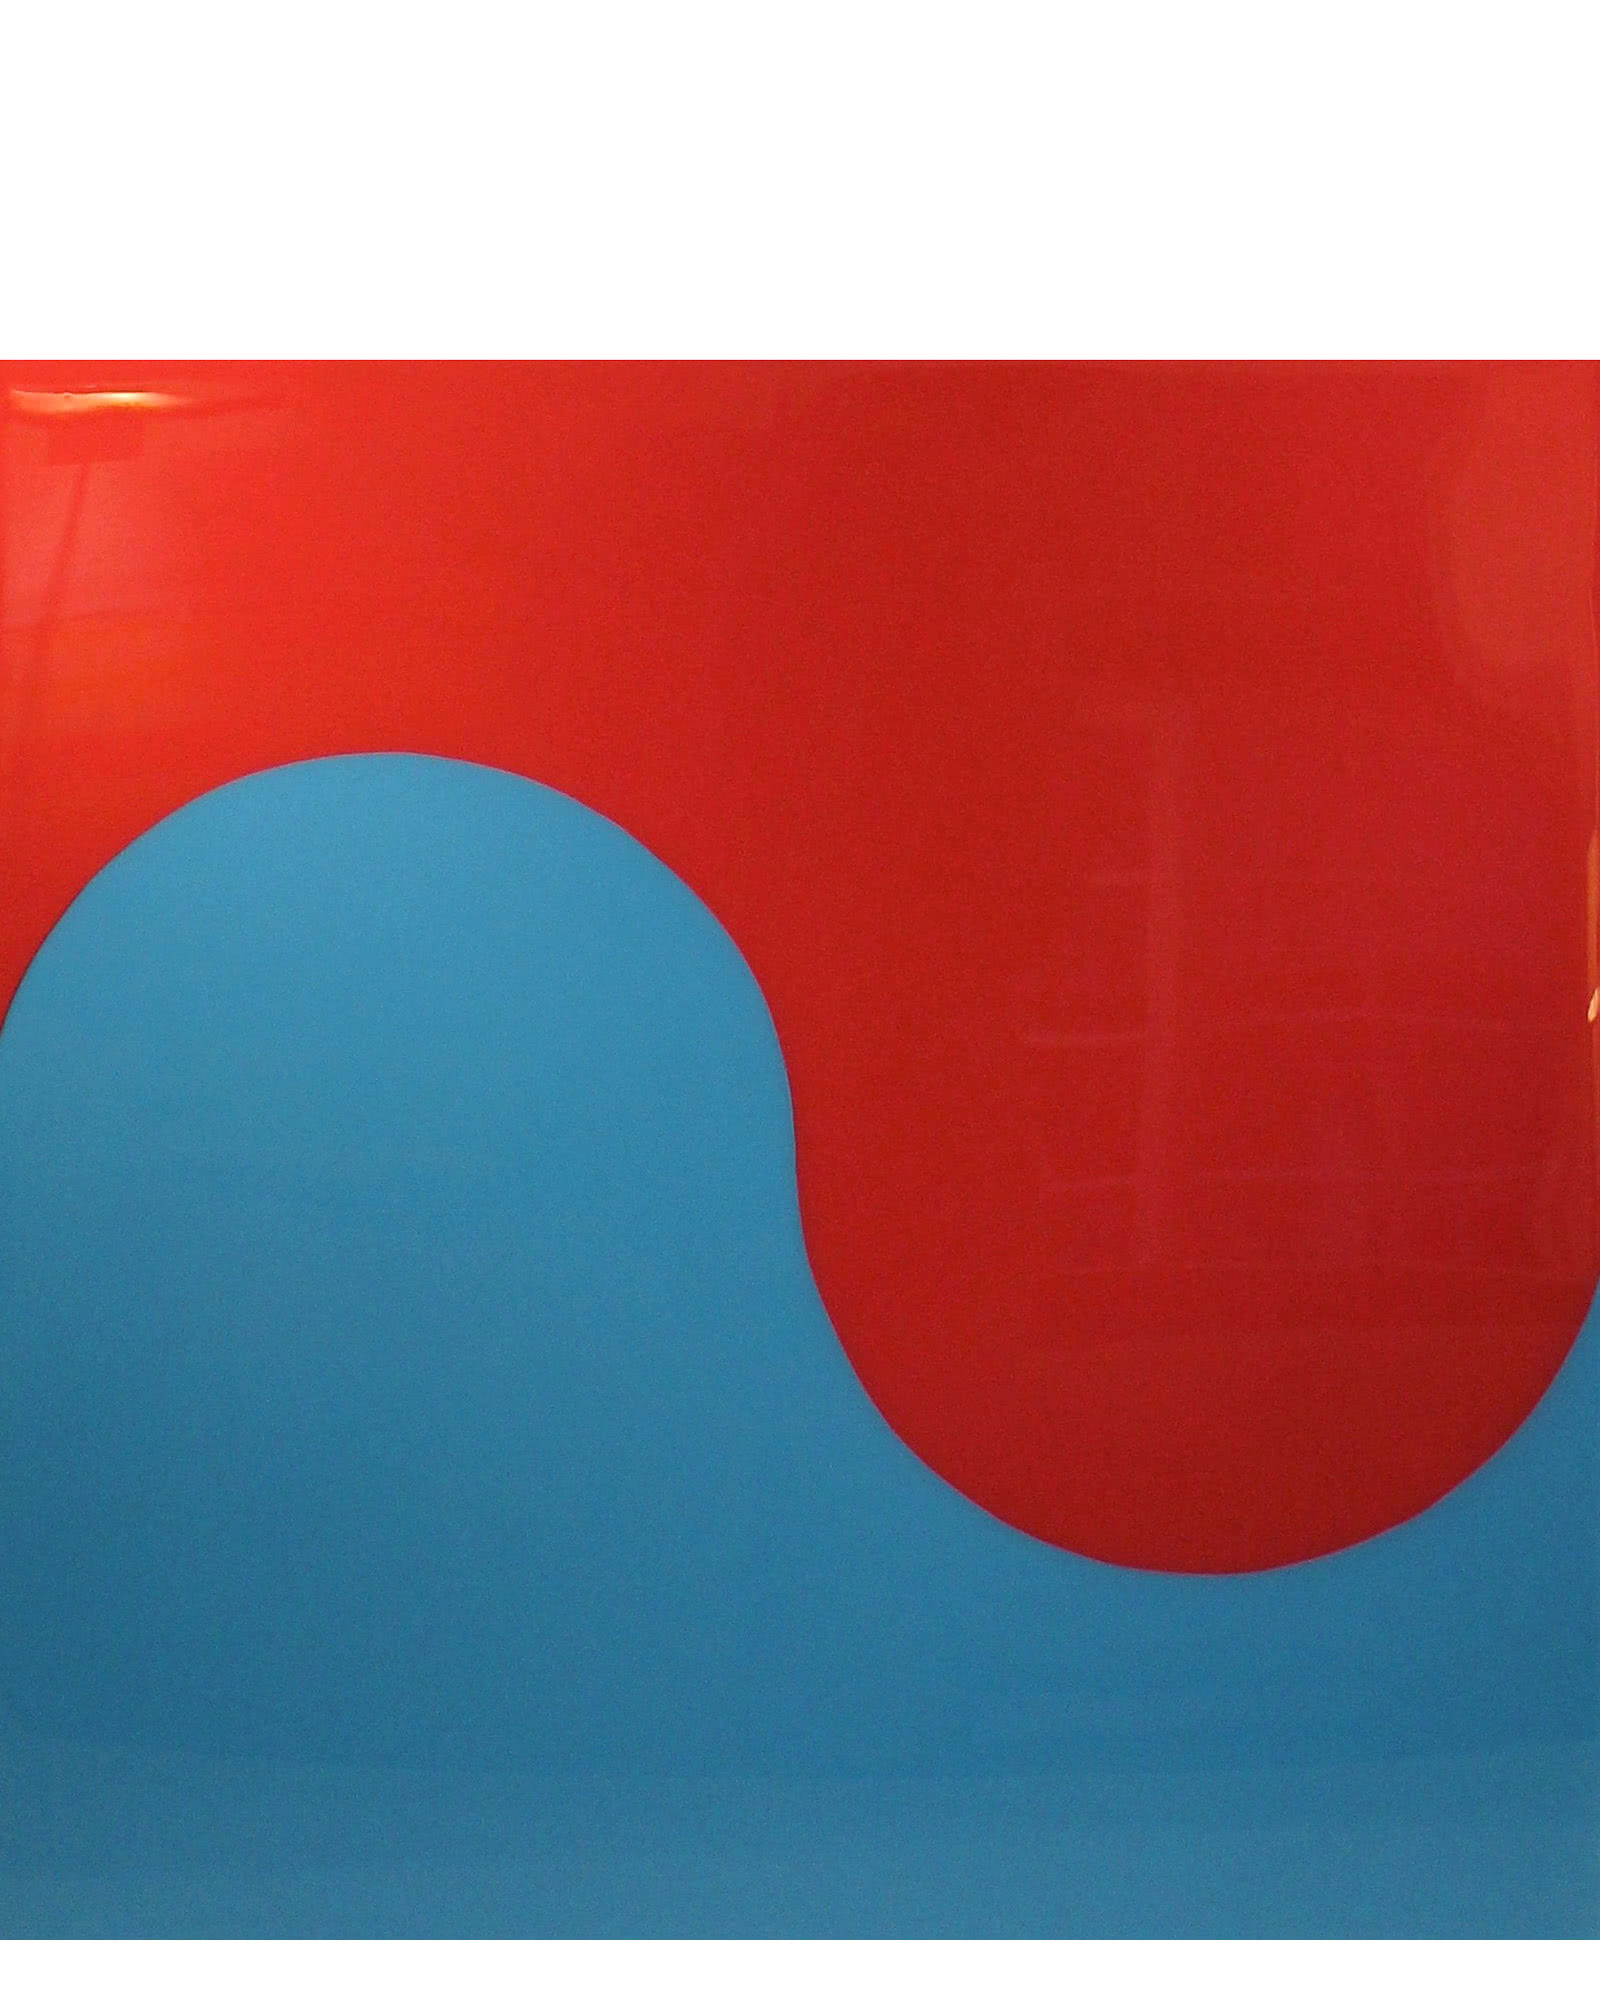 """Slow Curve in Fire Coral and Marine Blue"" by Stephanie Henderson,"